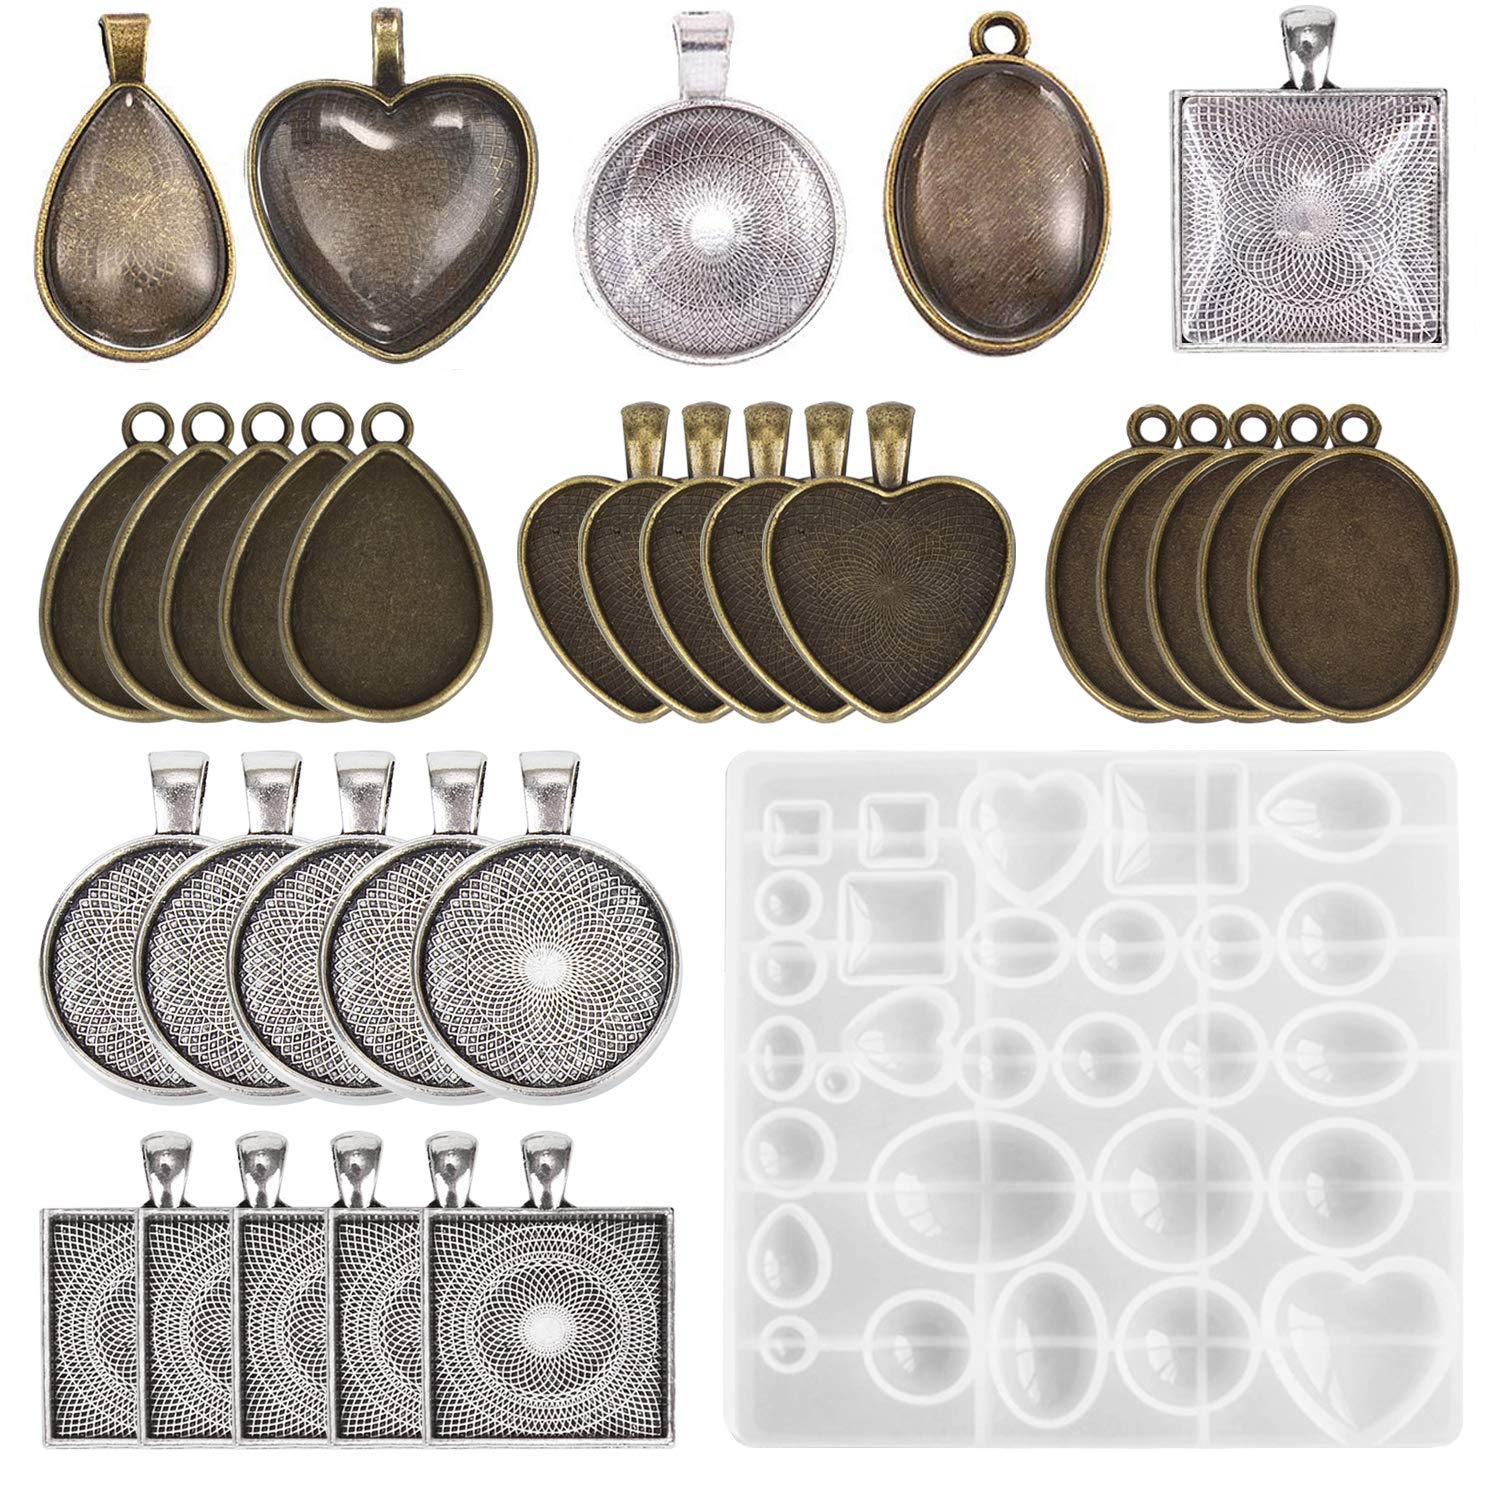 30 Pieces 5 Styles Pendant Trays,and 1 Pcs Silicone Resin Jewelry Casting Molds for Pendant Crafting DIY Jewelry Gift Making by F FYJS